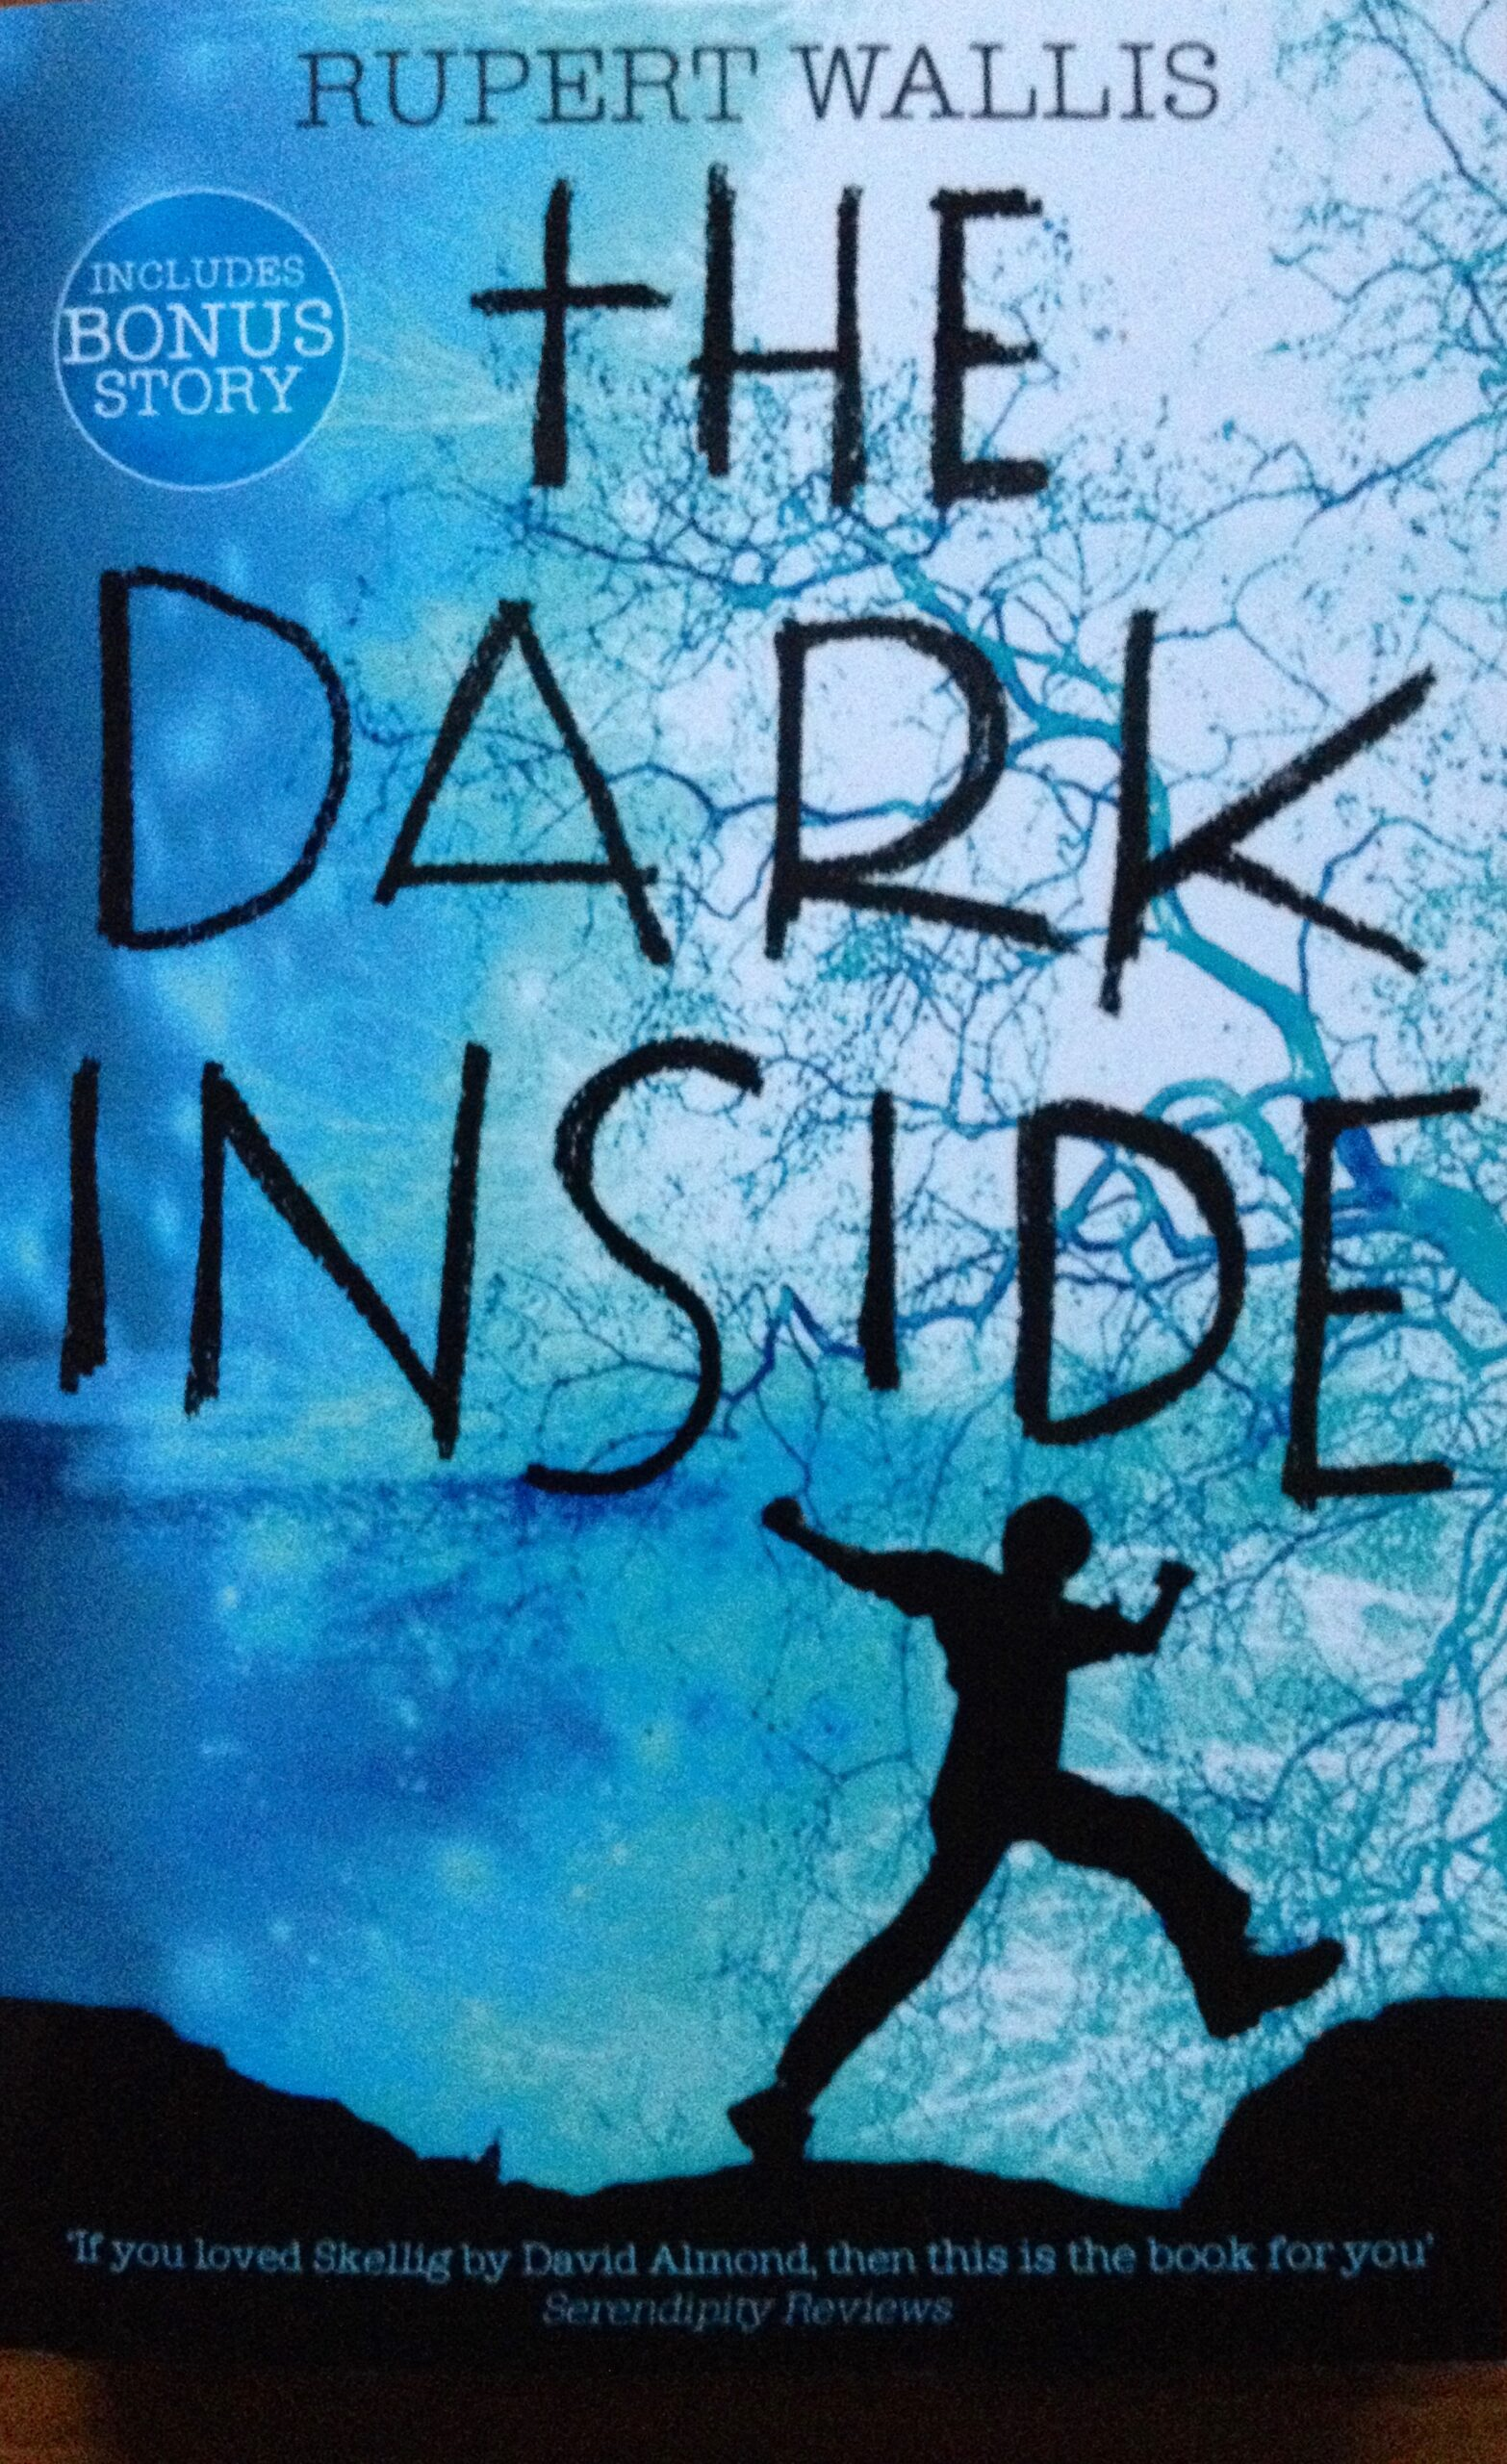 Books2All blog: Q&A with Rupert Wallis, author of The Dark Inside